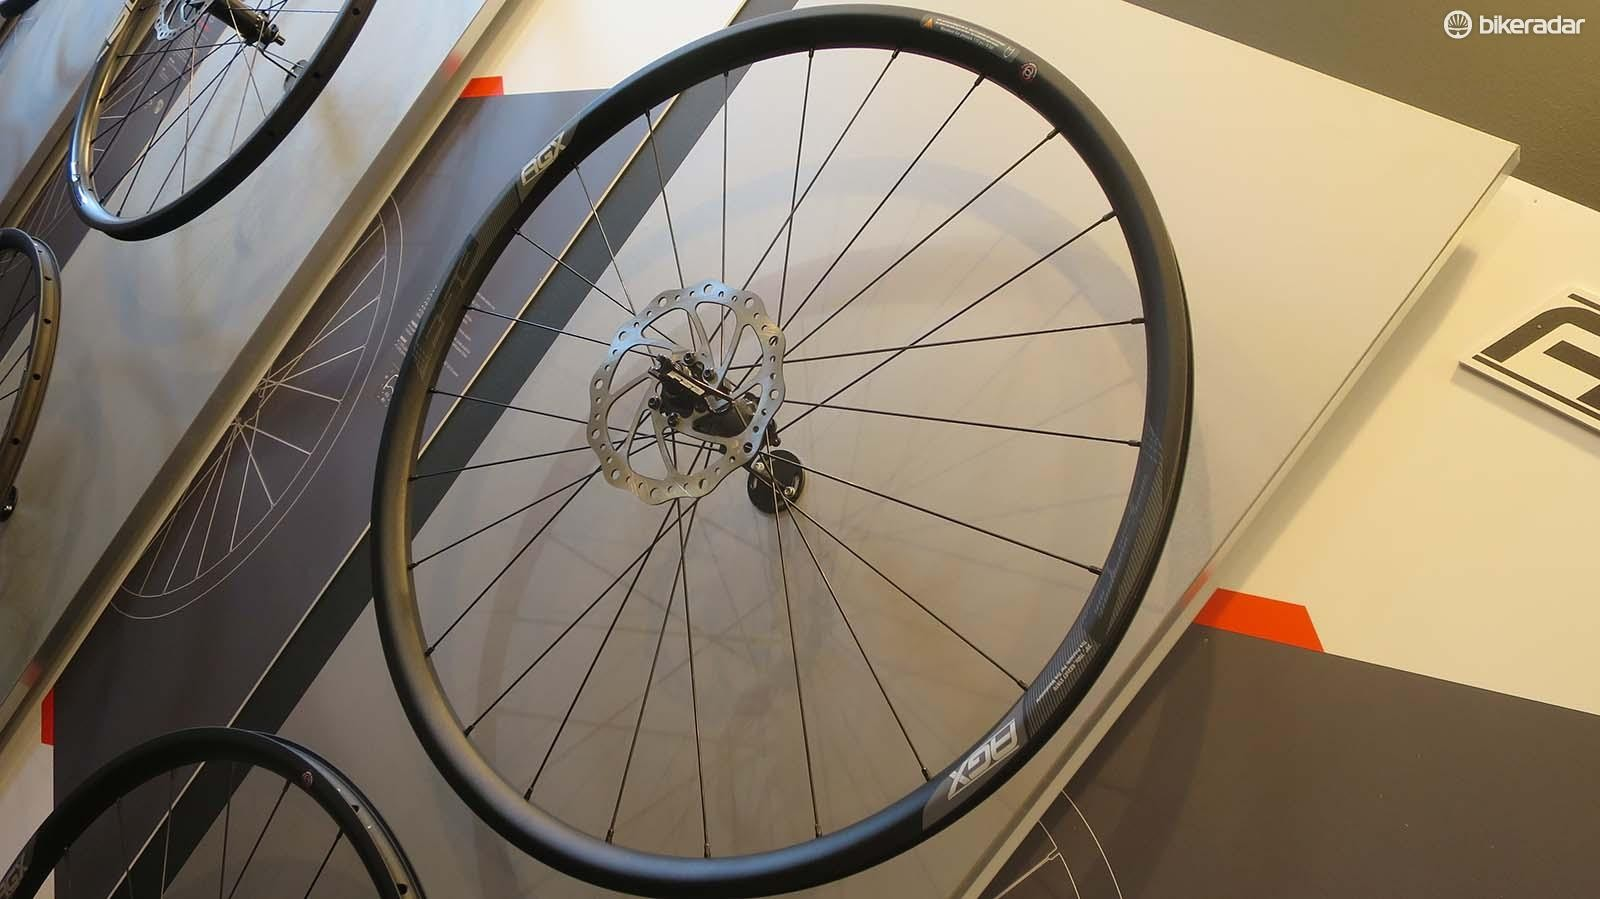 The new carbon tubeless-ready AGX wheelset